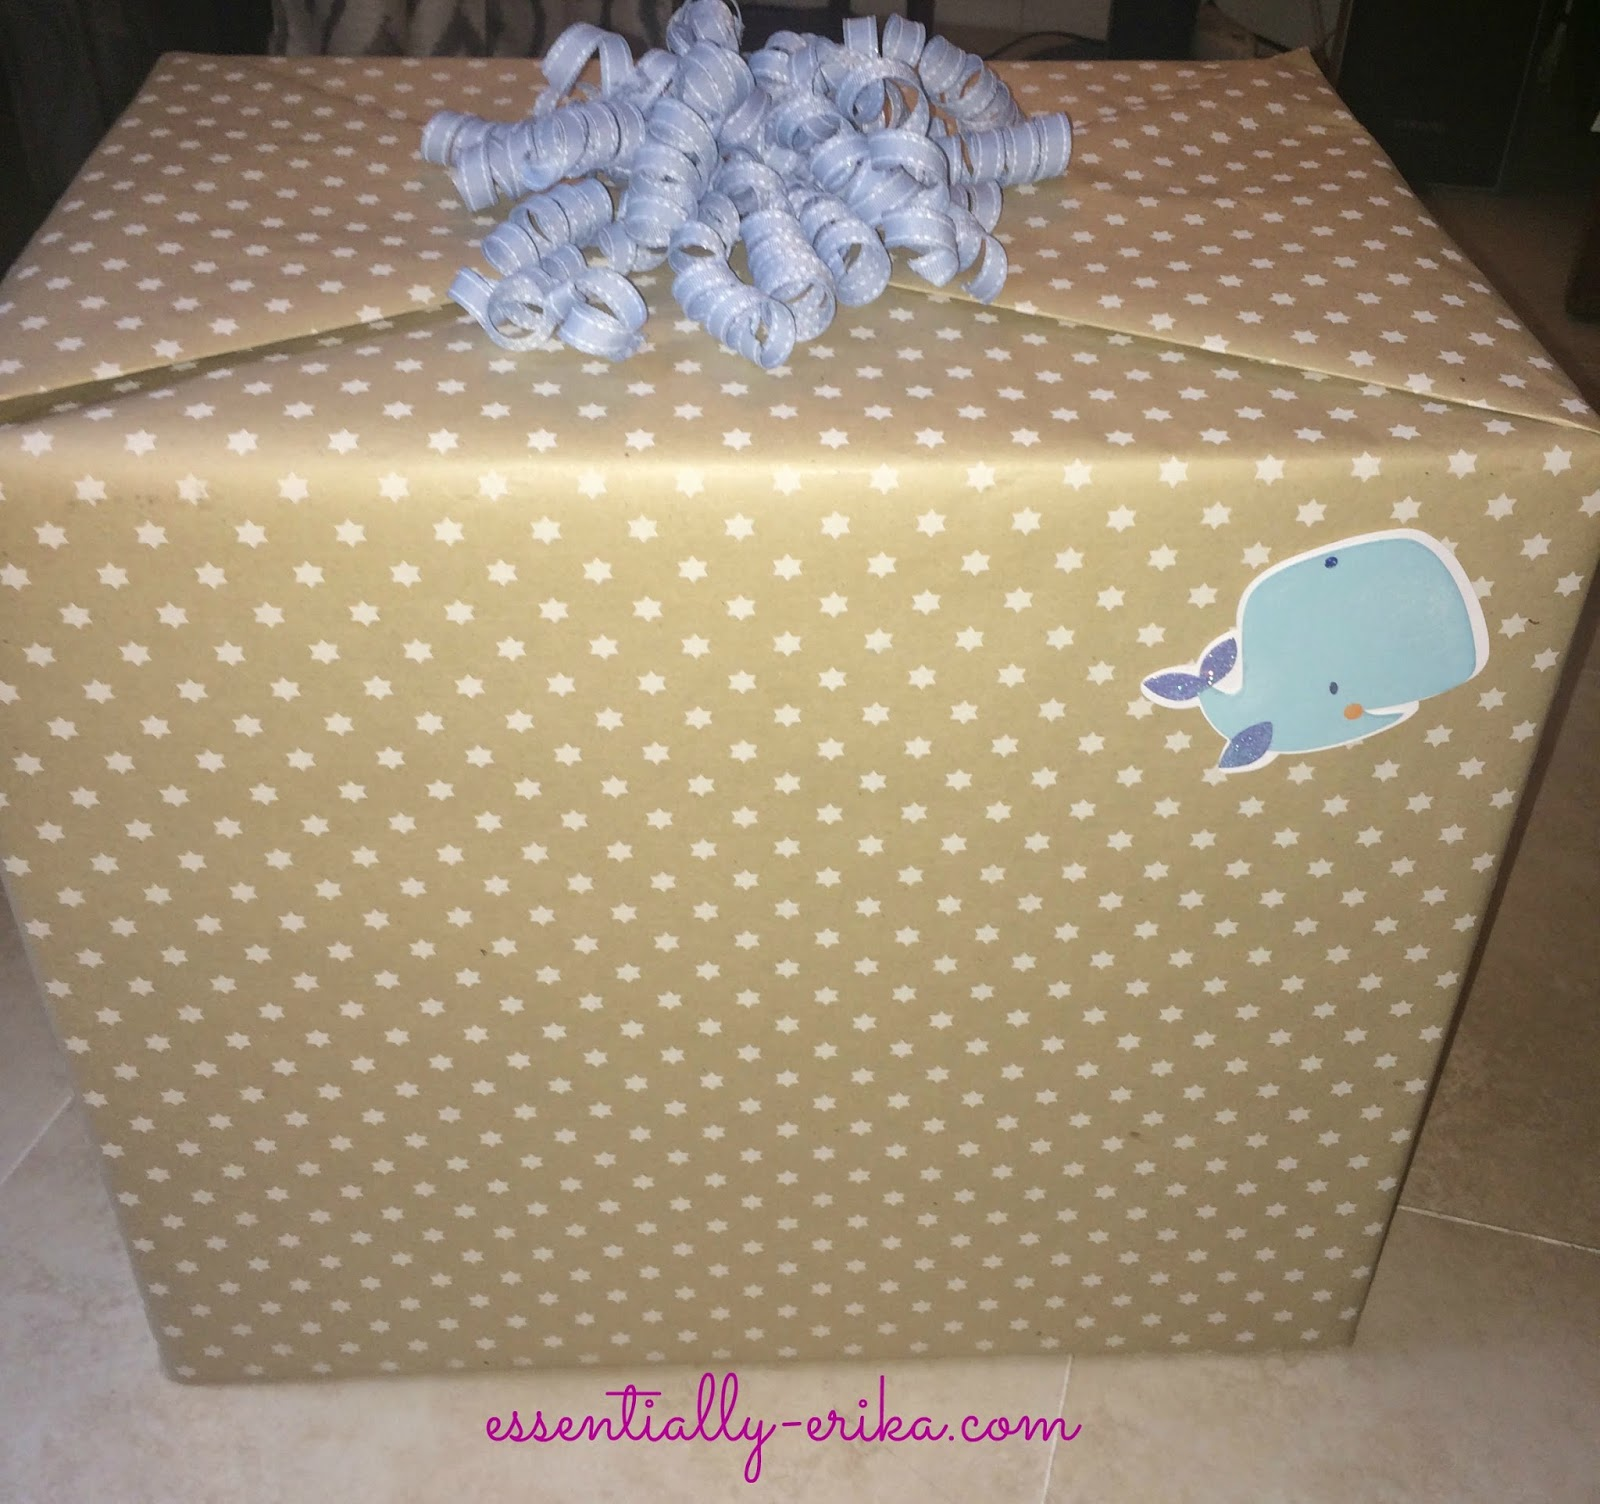 essentiallyerika diy the perfect baby shower gift basket, Baby shower